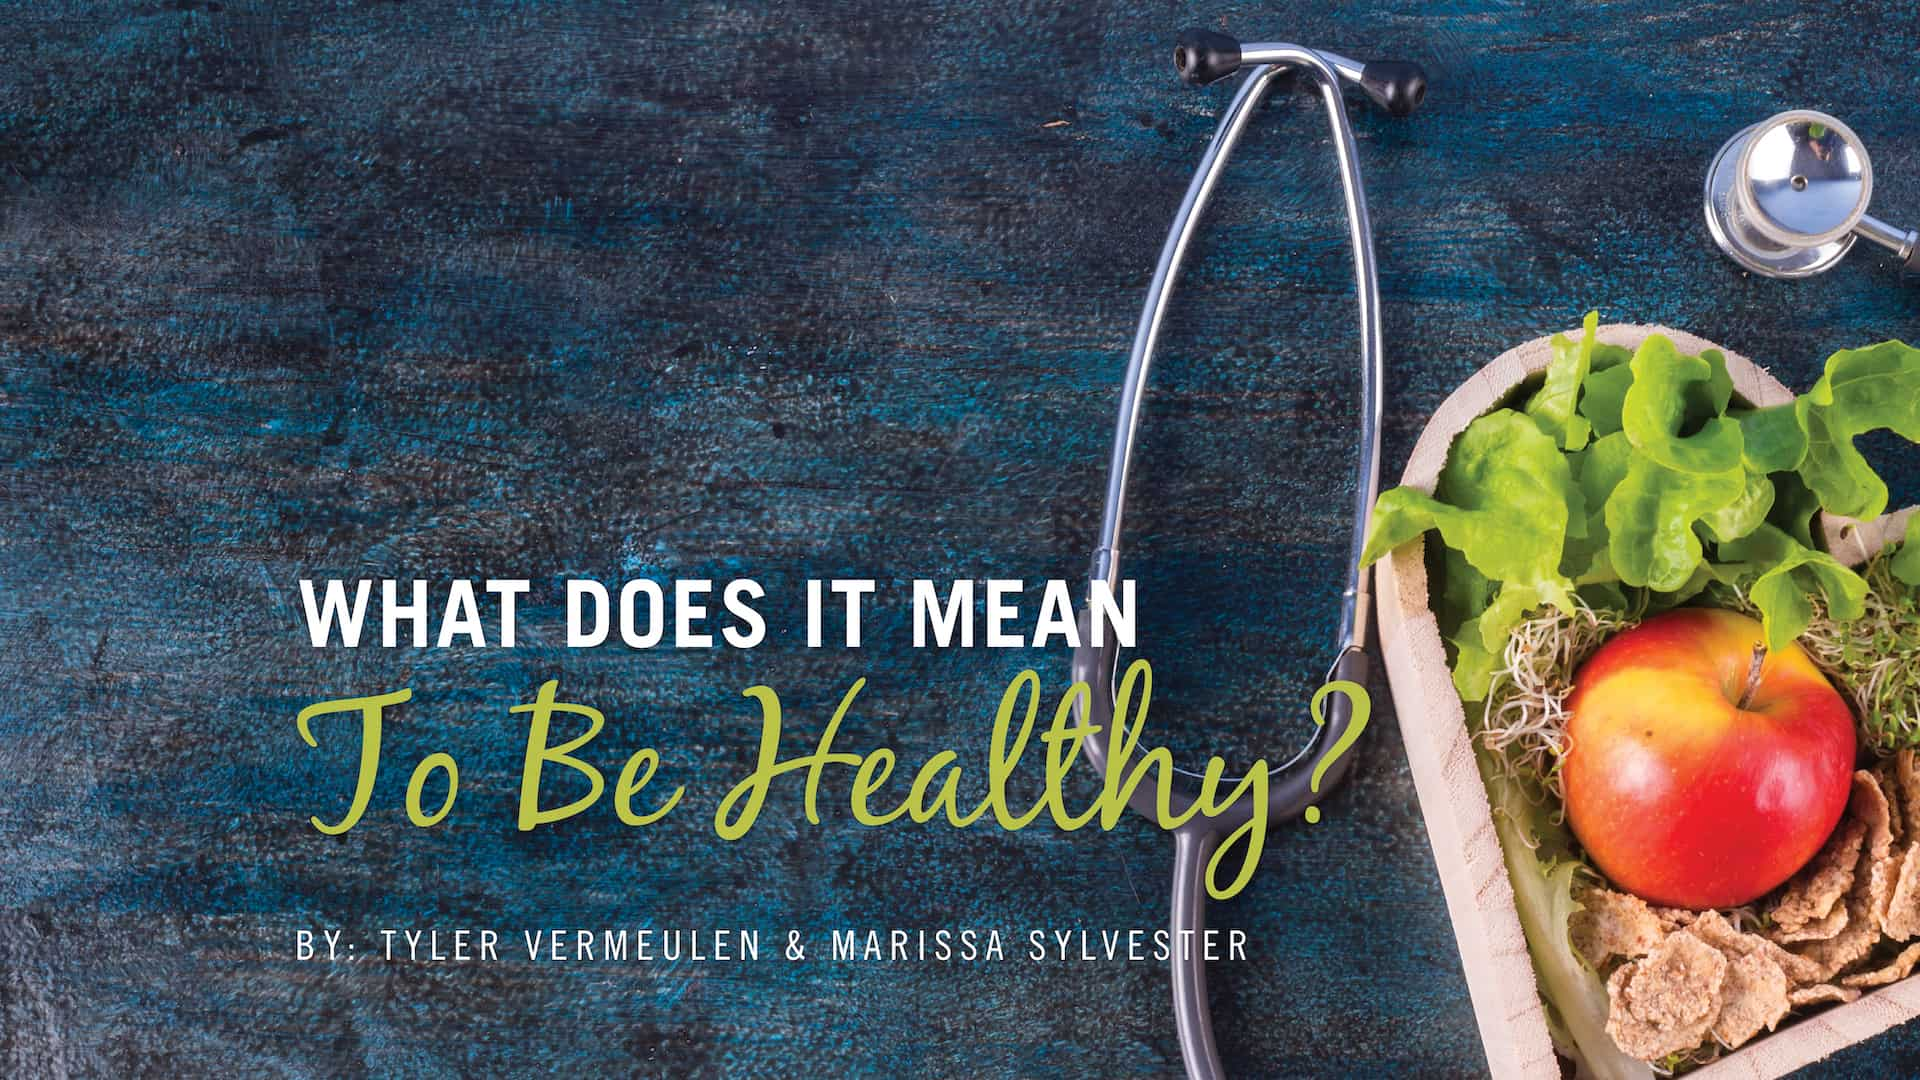 A stethoscope is curled around the heart shaped basket with an apple and a salad in it